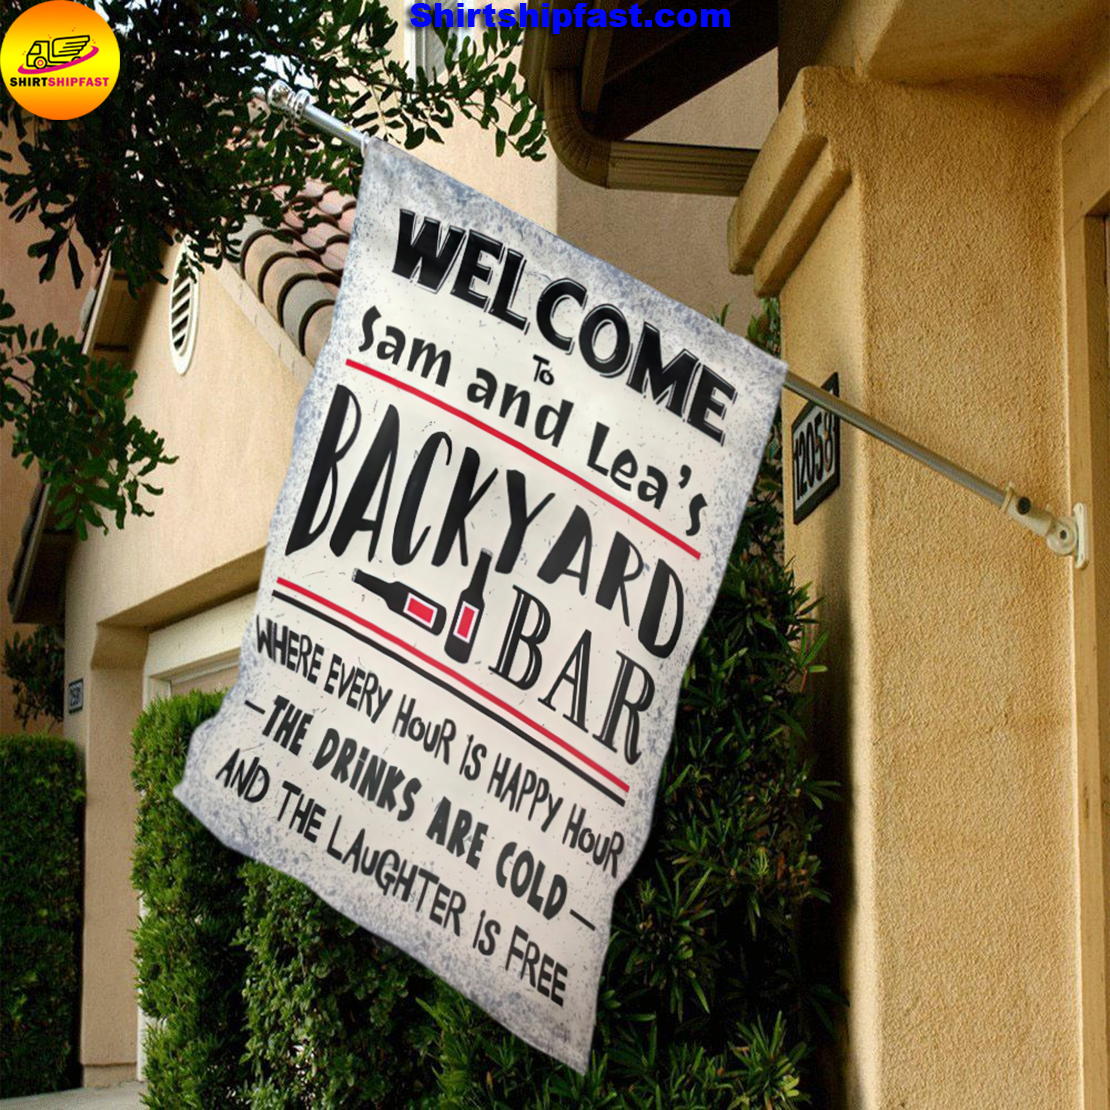 Personalized Welcome to backyard bar flag - Picture 2